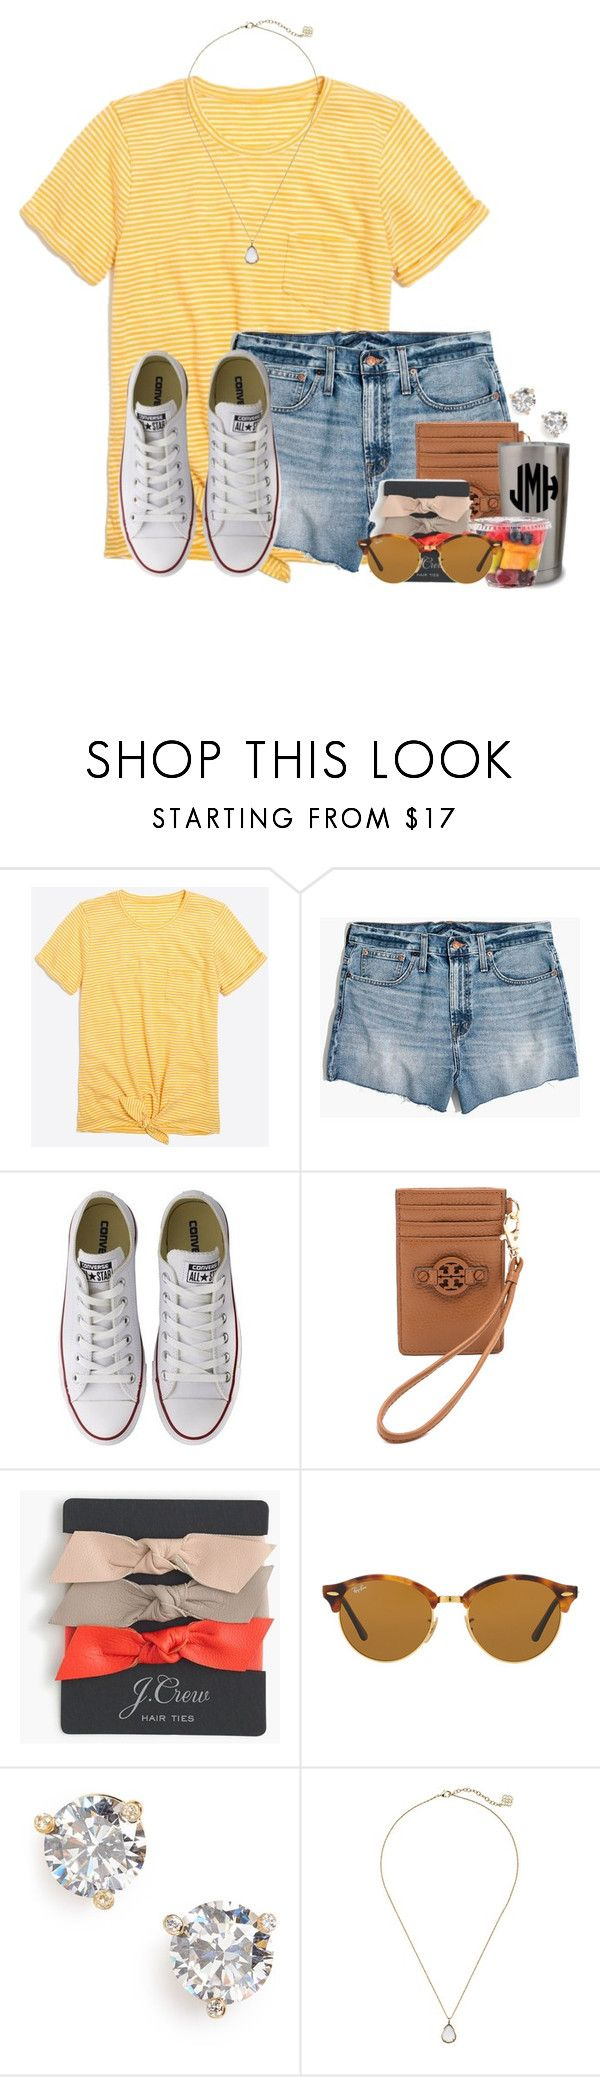 """Going to go see Golden Retriever dogs☁️"" by flroasburn ❤ liked on Polyvore featuring J.Crew, Madewell, Converse, Tory Burch, Ray-Ban, Kate Spade and Kendra Scott"